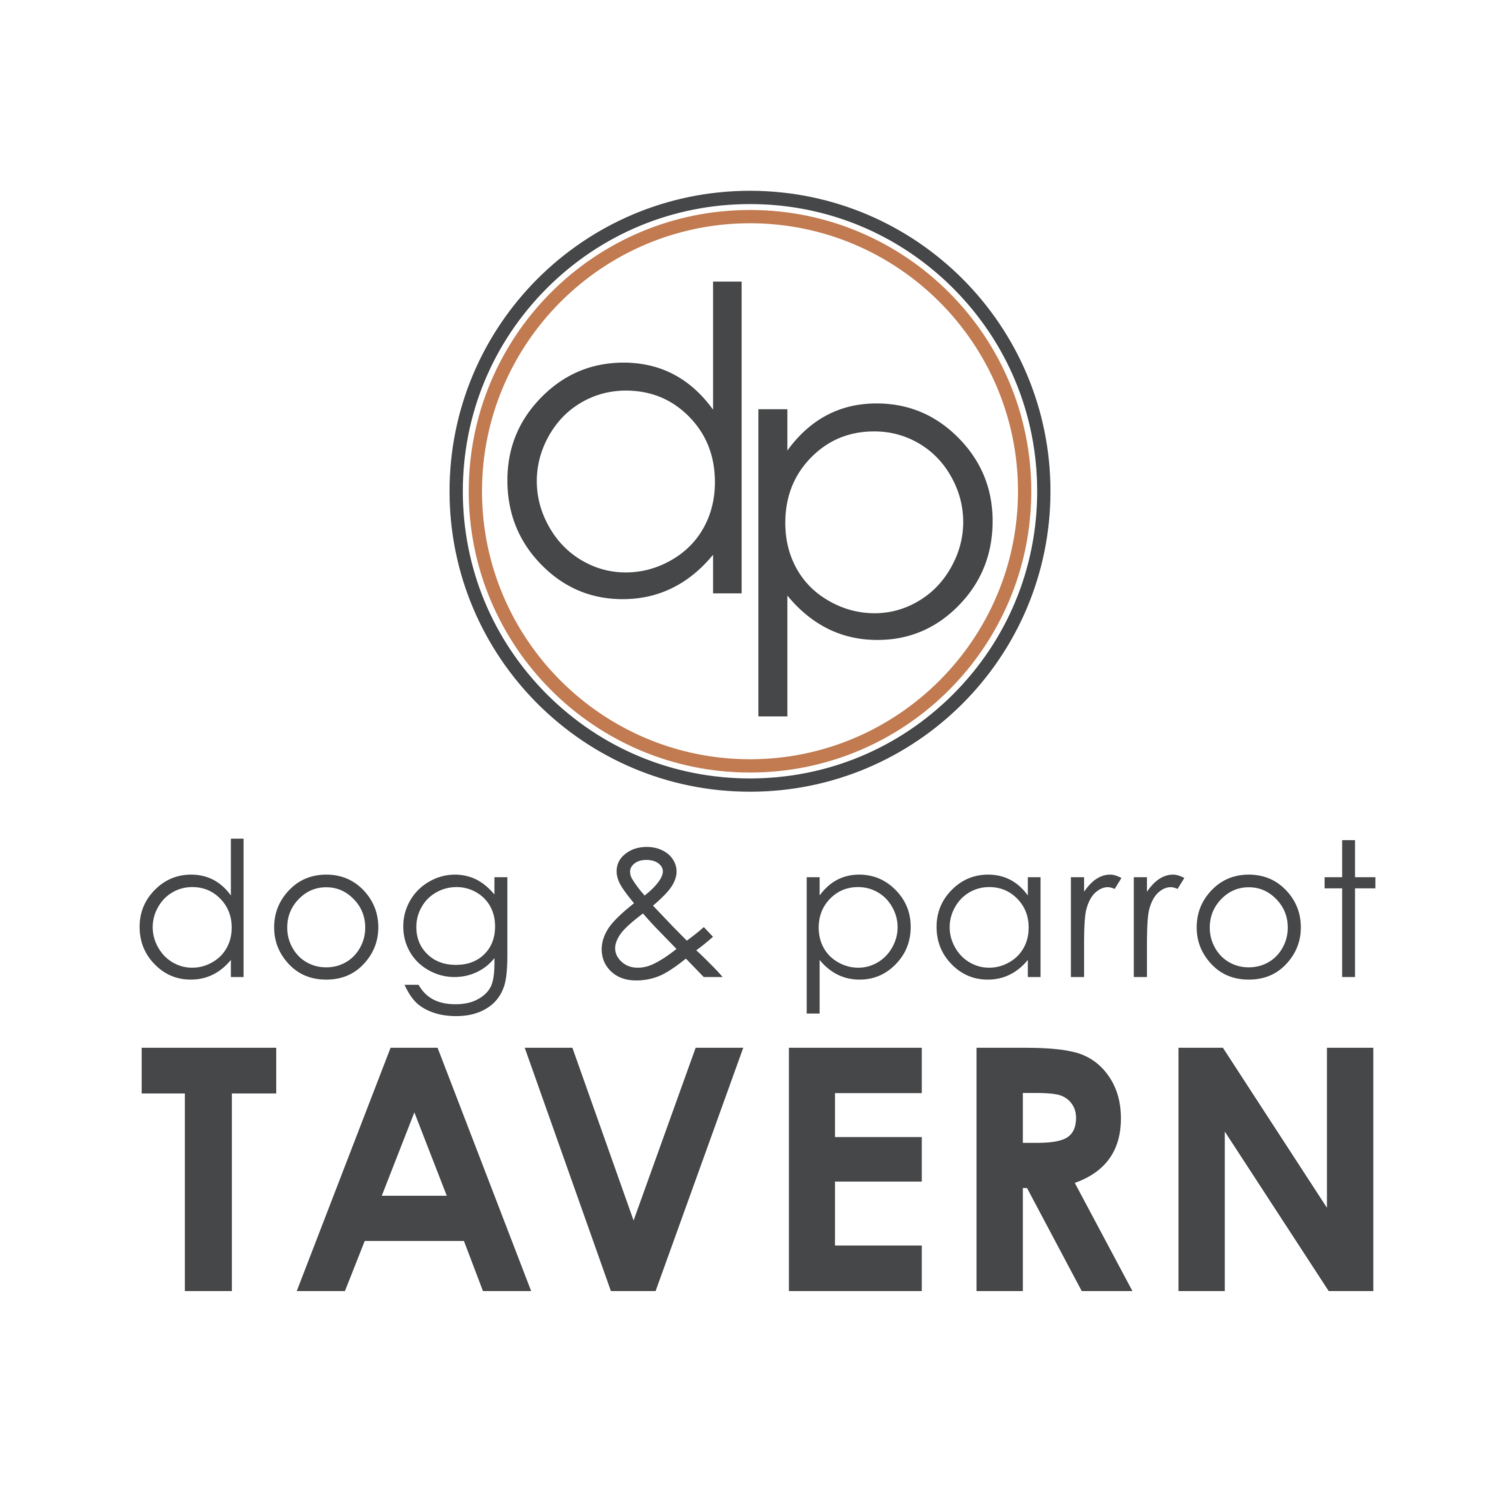 Dog and Parrot Tavern, Robina, QLD